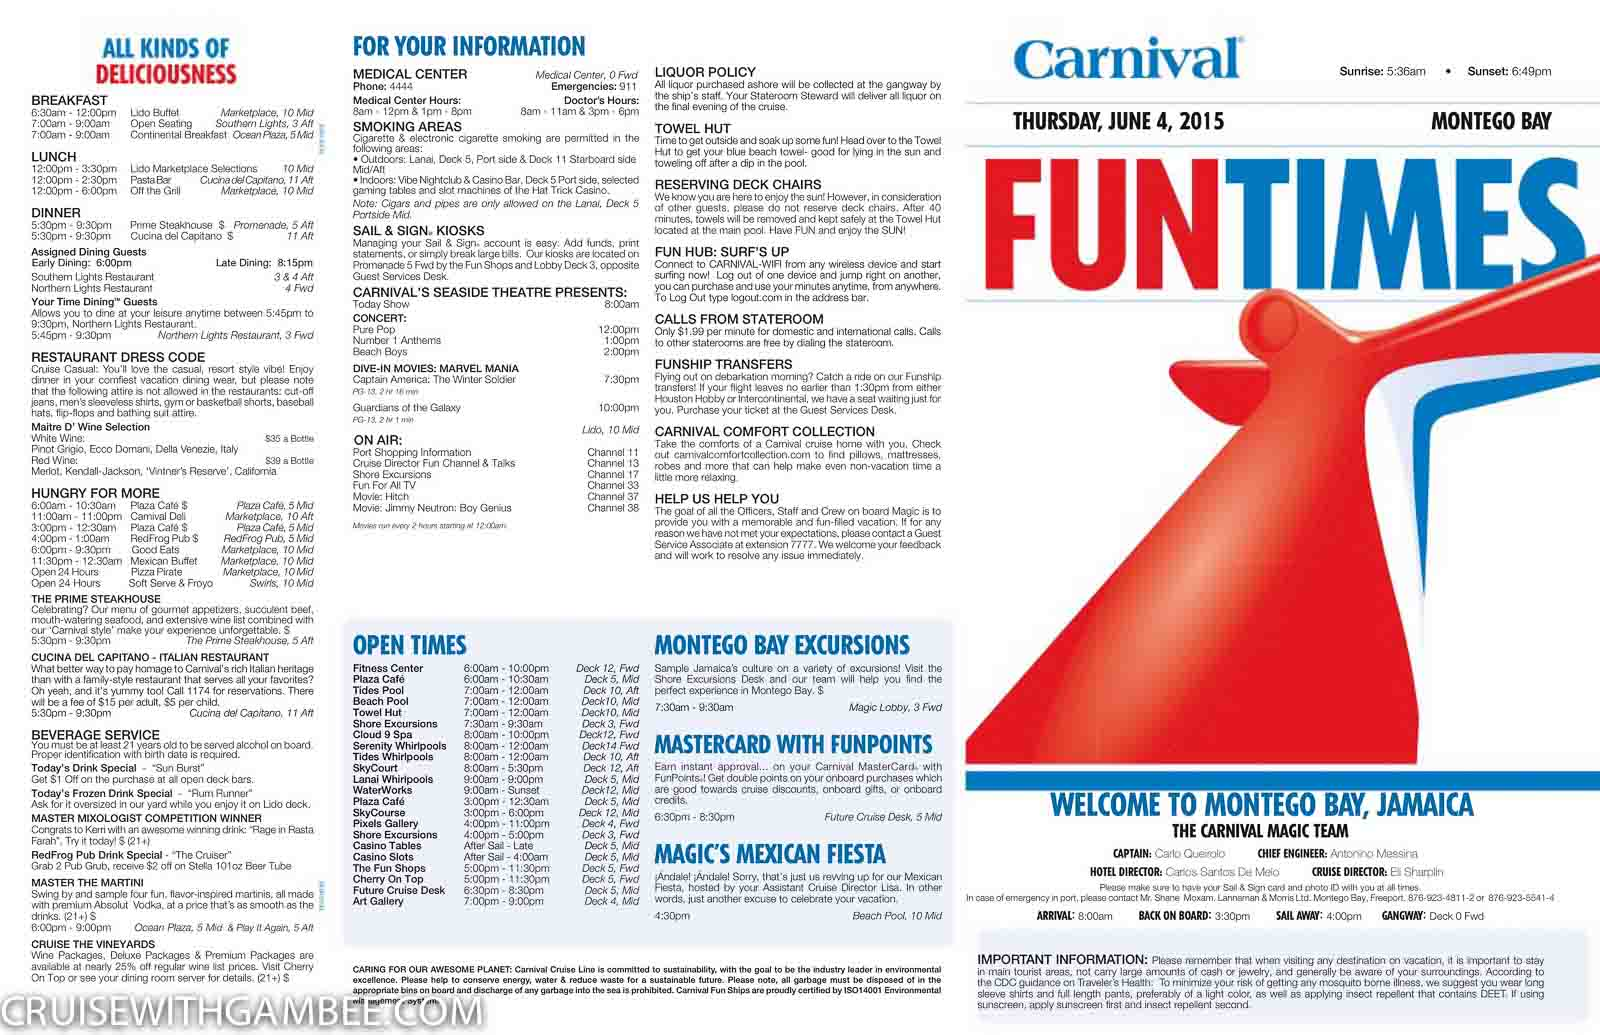 Carnival Magic Funtimes-9